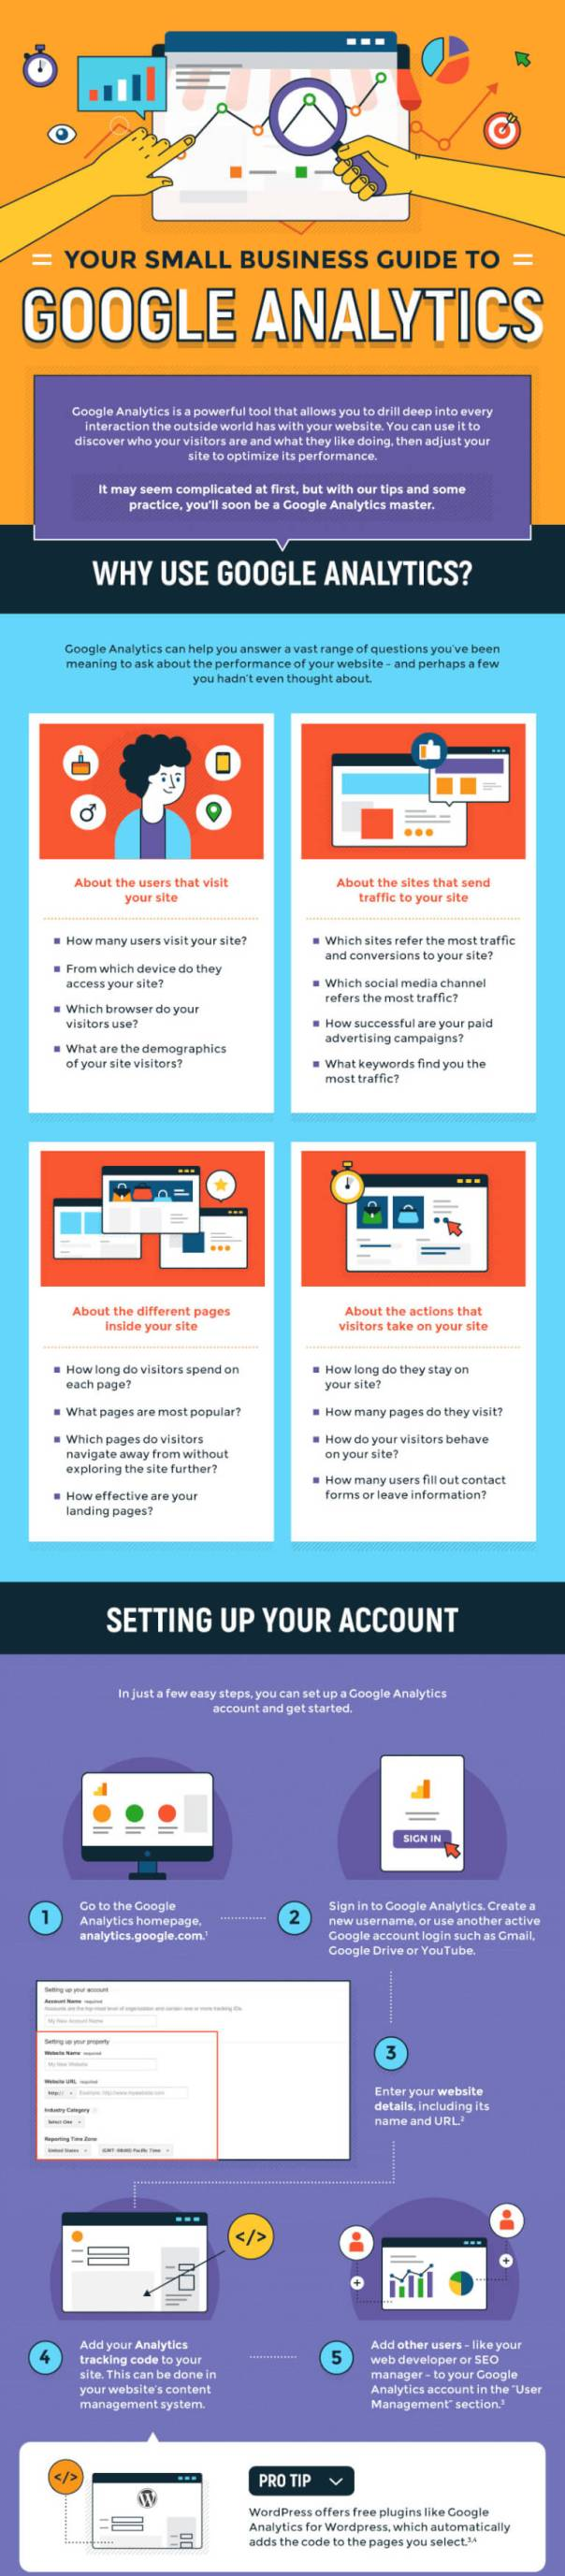 [Infographic]-The-Small-Business-Guide-to-Google-Analytics_01